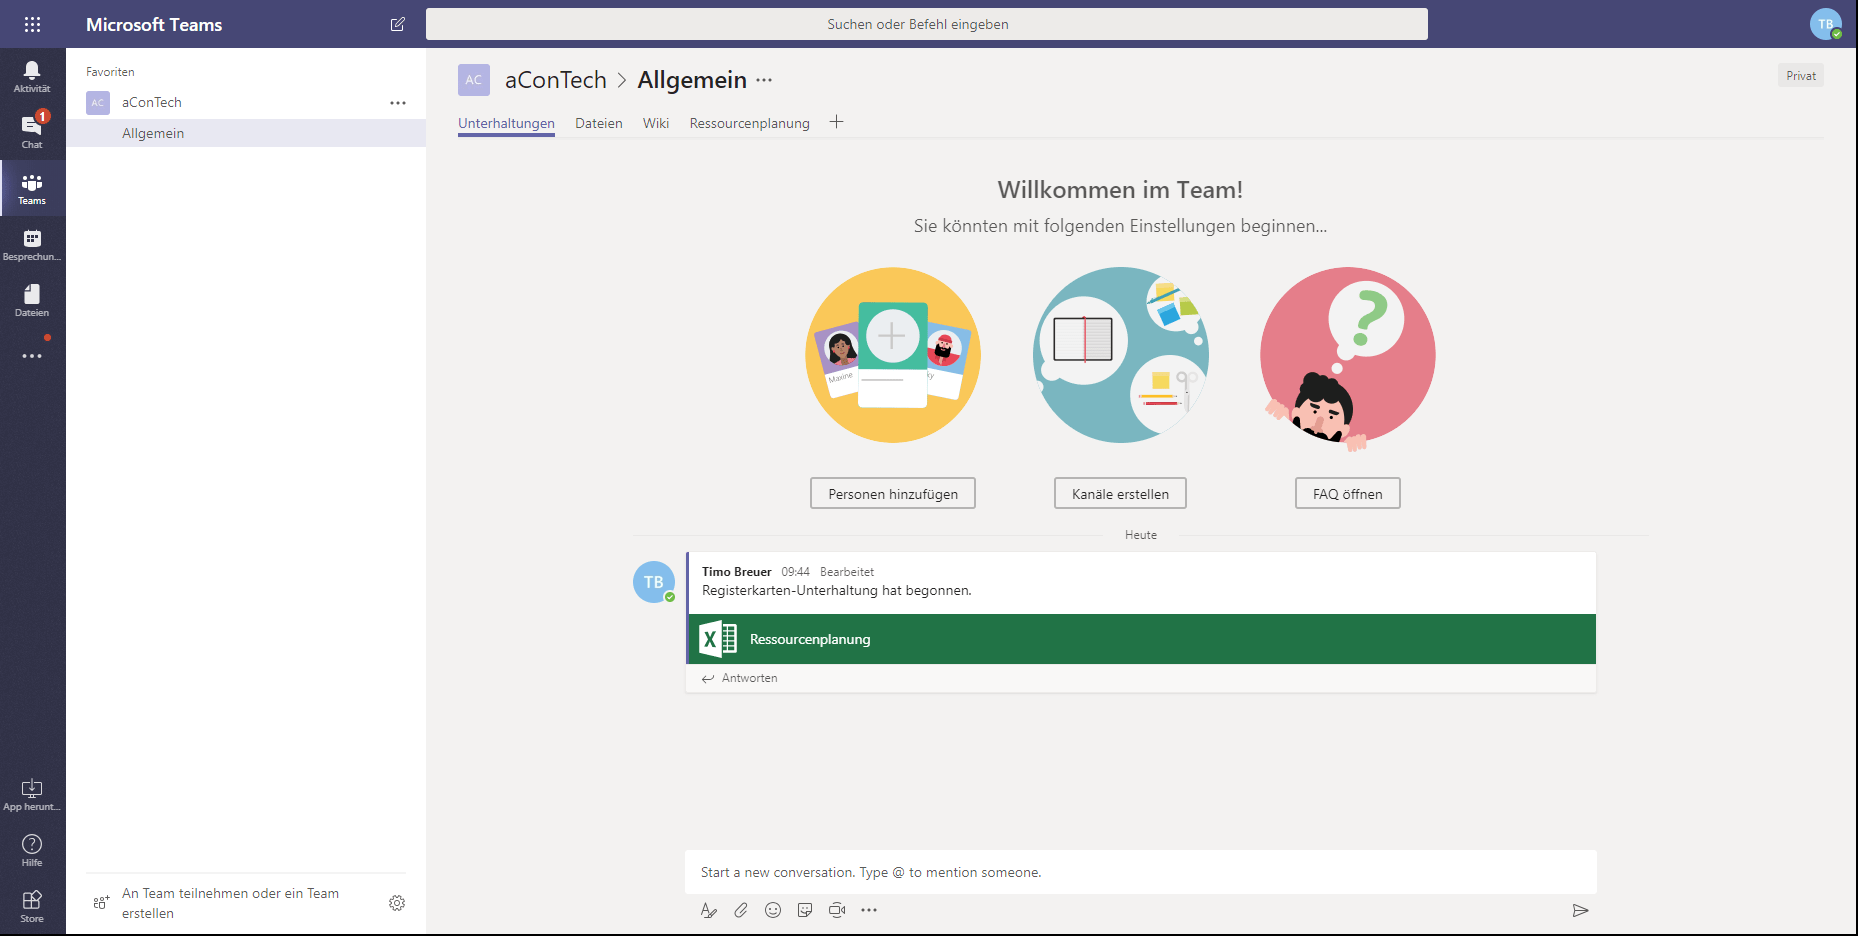 Microsoft Teams Willkommen-Screen